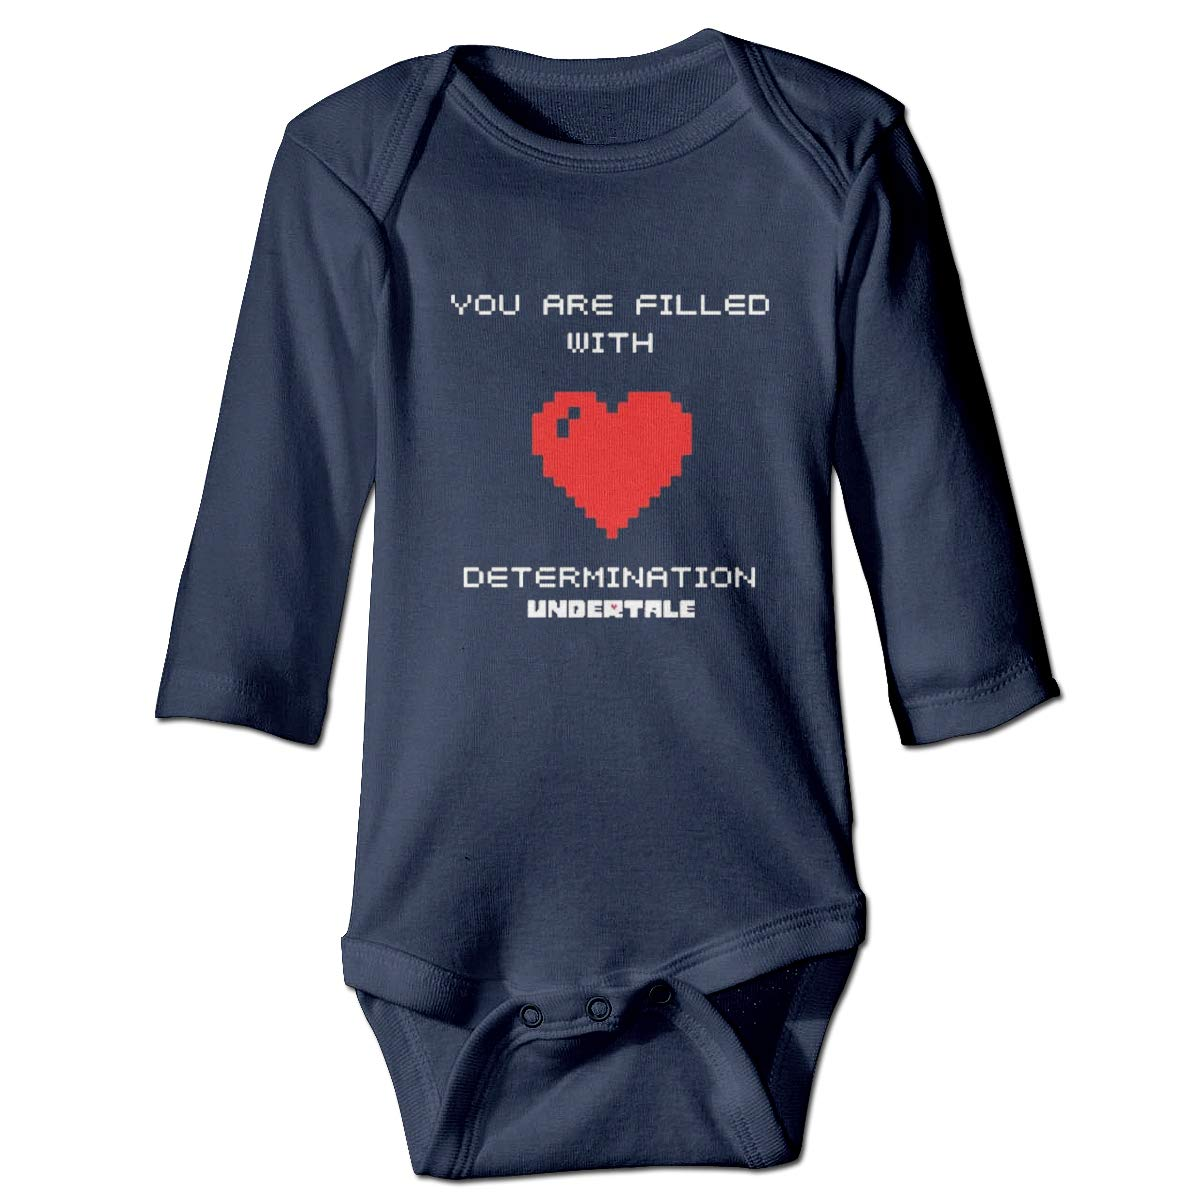 You are Filled with Determination Baby Long Sleeve Onesies Soft Romper Bodysuit Outfits